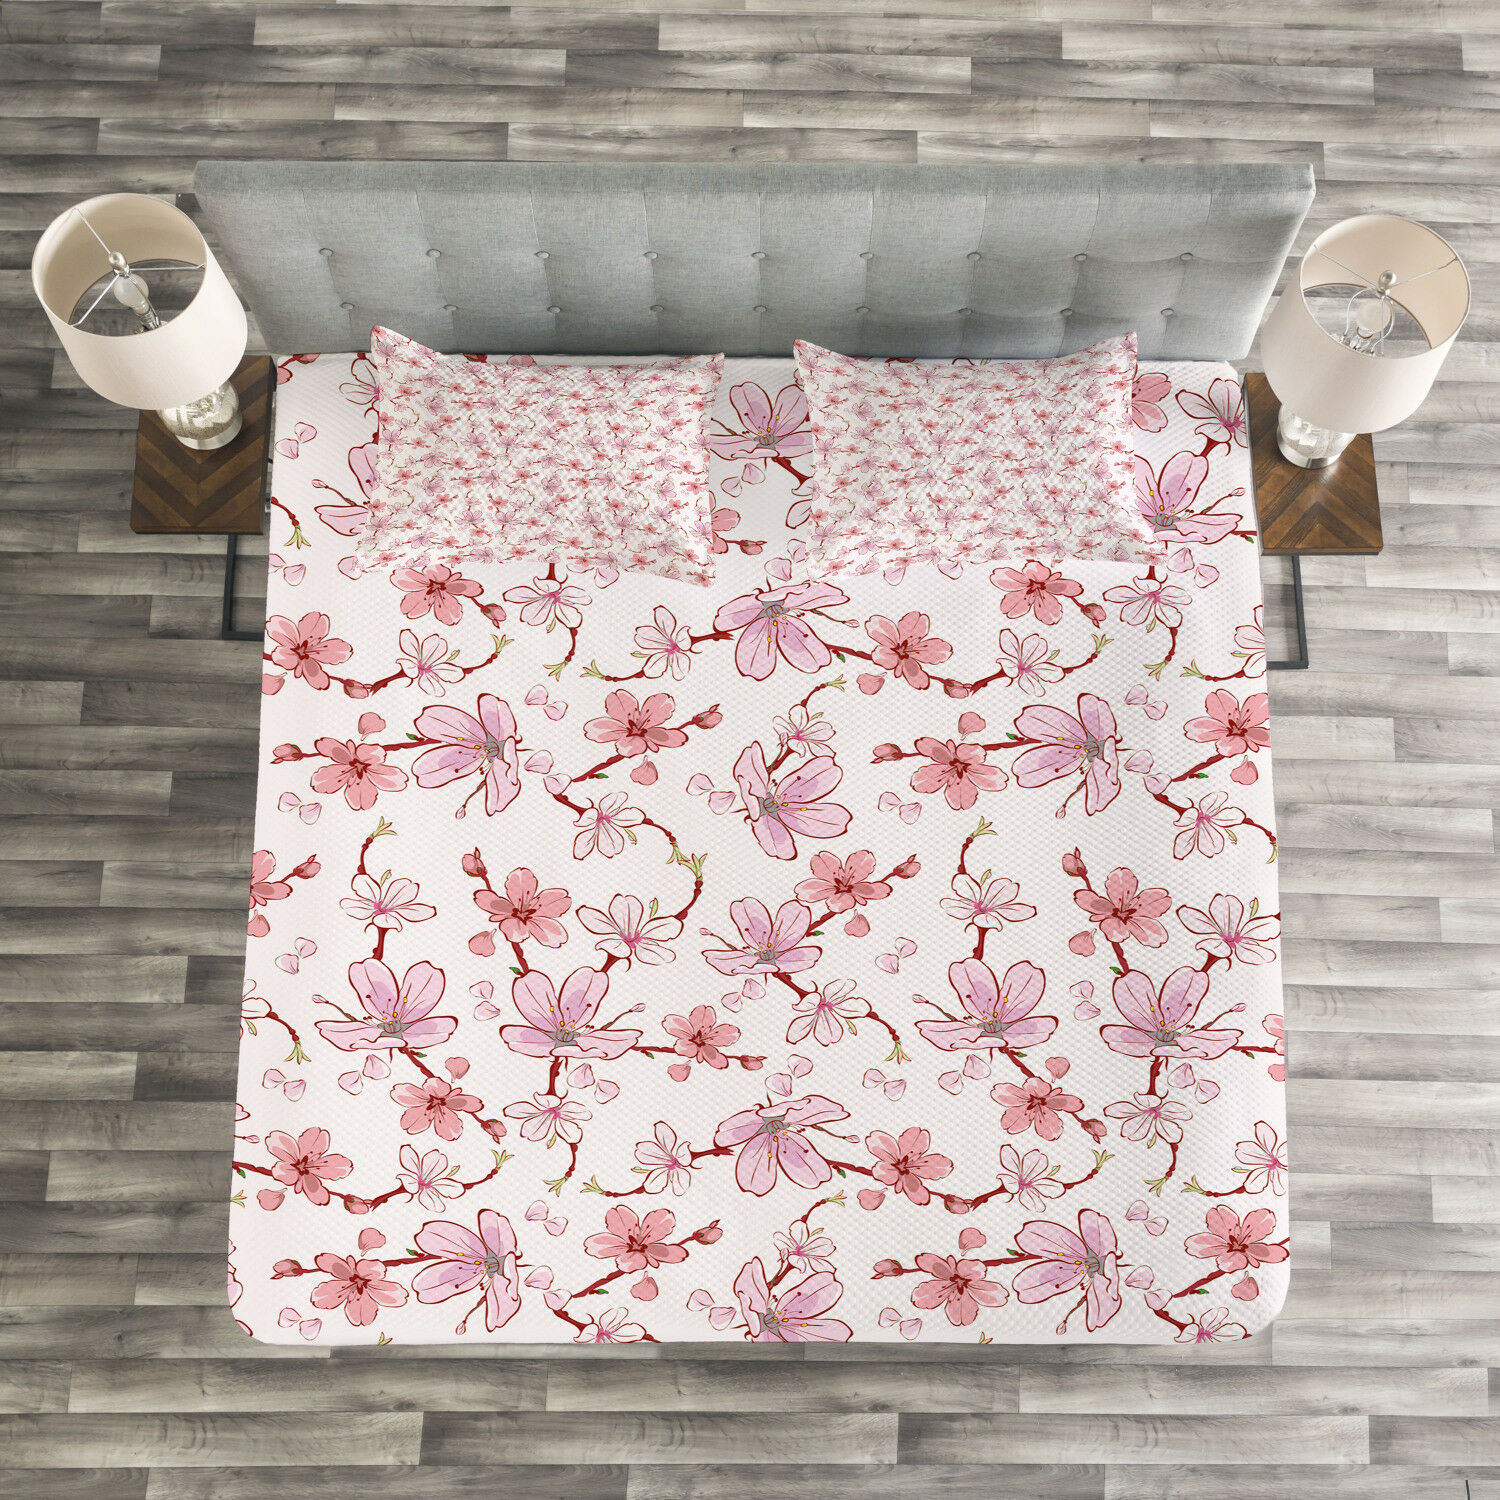 Asian Quilted Bedspread & Pillow Shams Set, Japanese Cherry Blooms Print